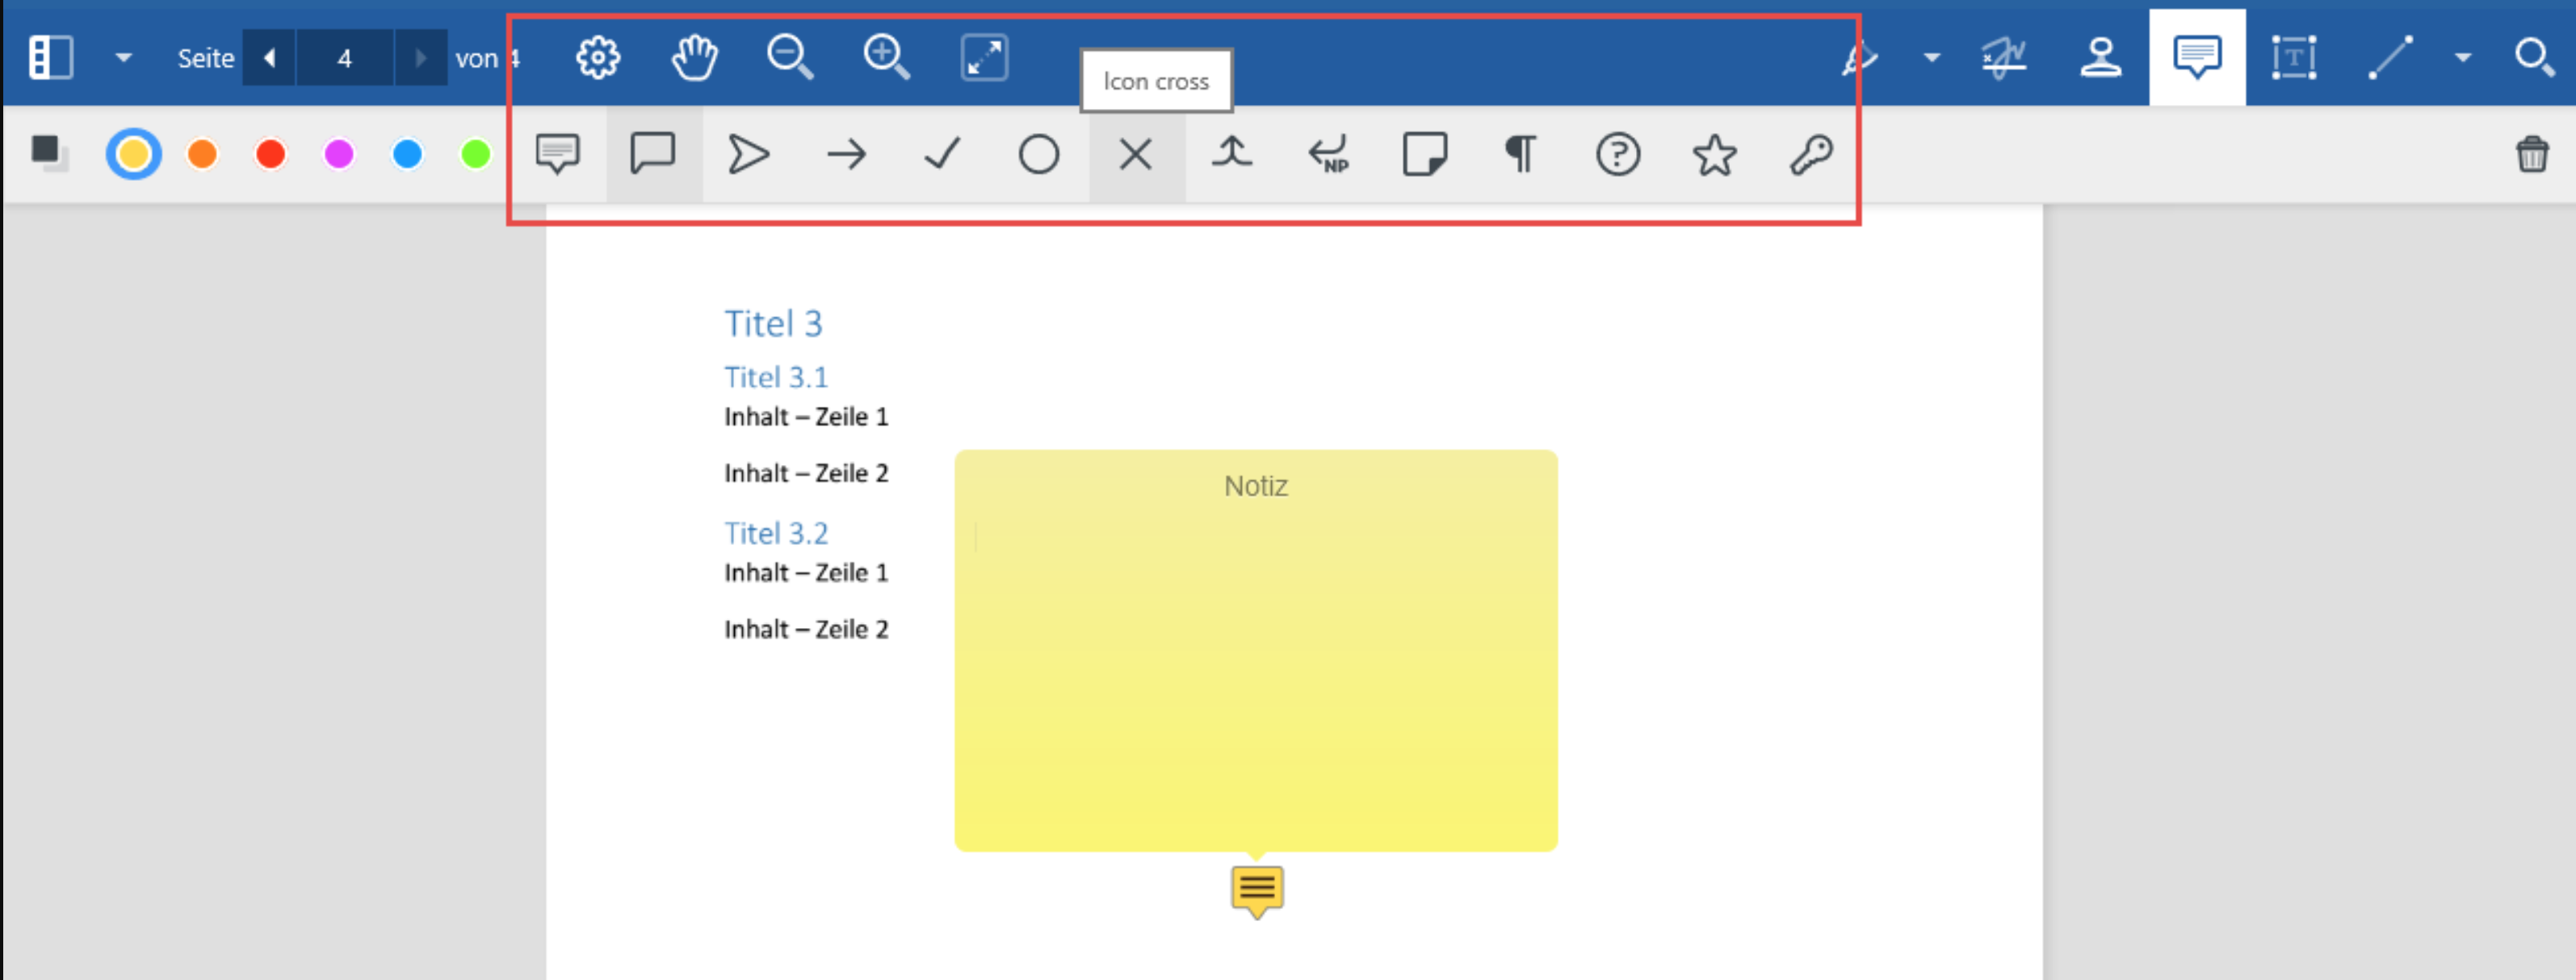 UWP] Tooltips are not translated  · Issue #226 · PSPDFKit